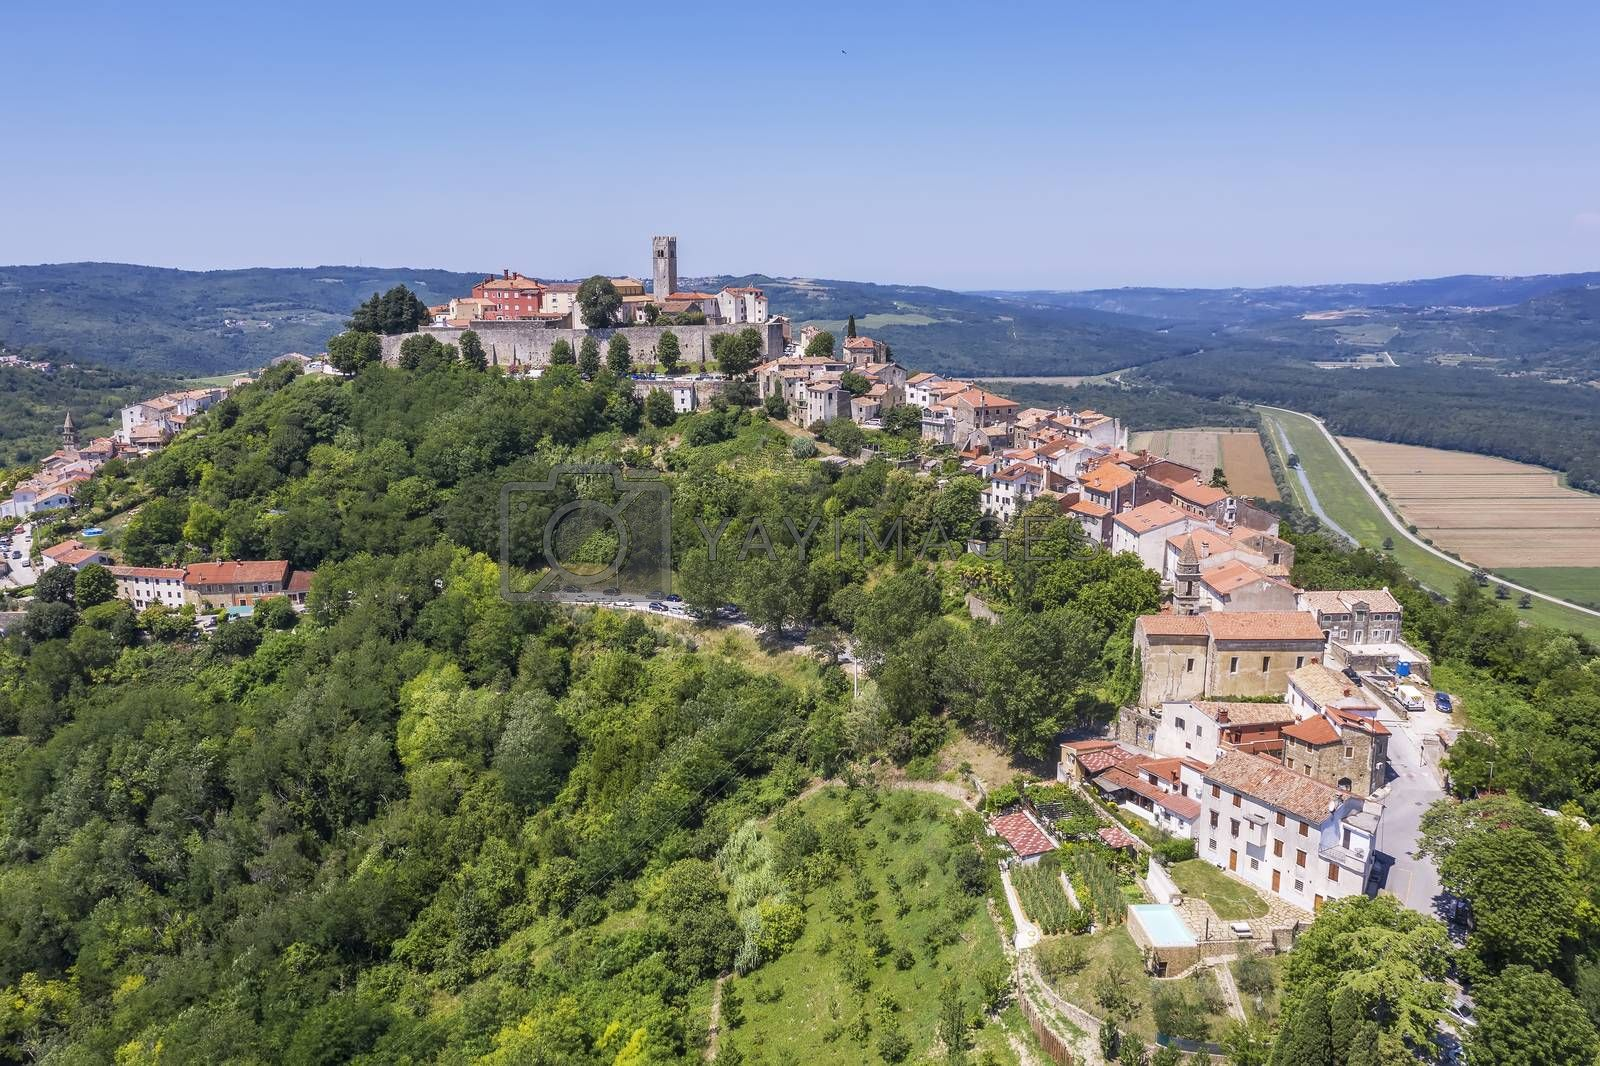 An aerial view of Motovun, settlement in central Istria, Croatia